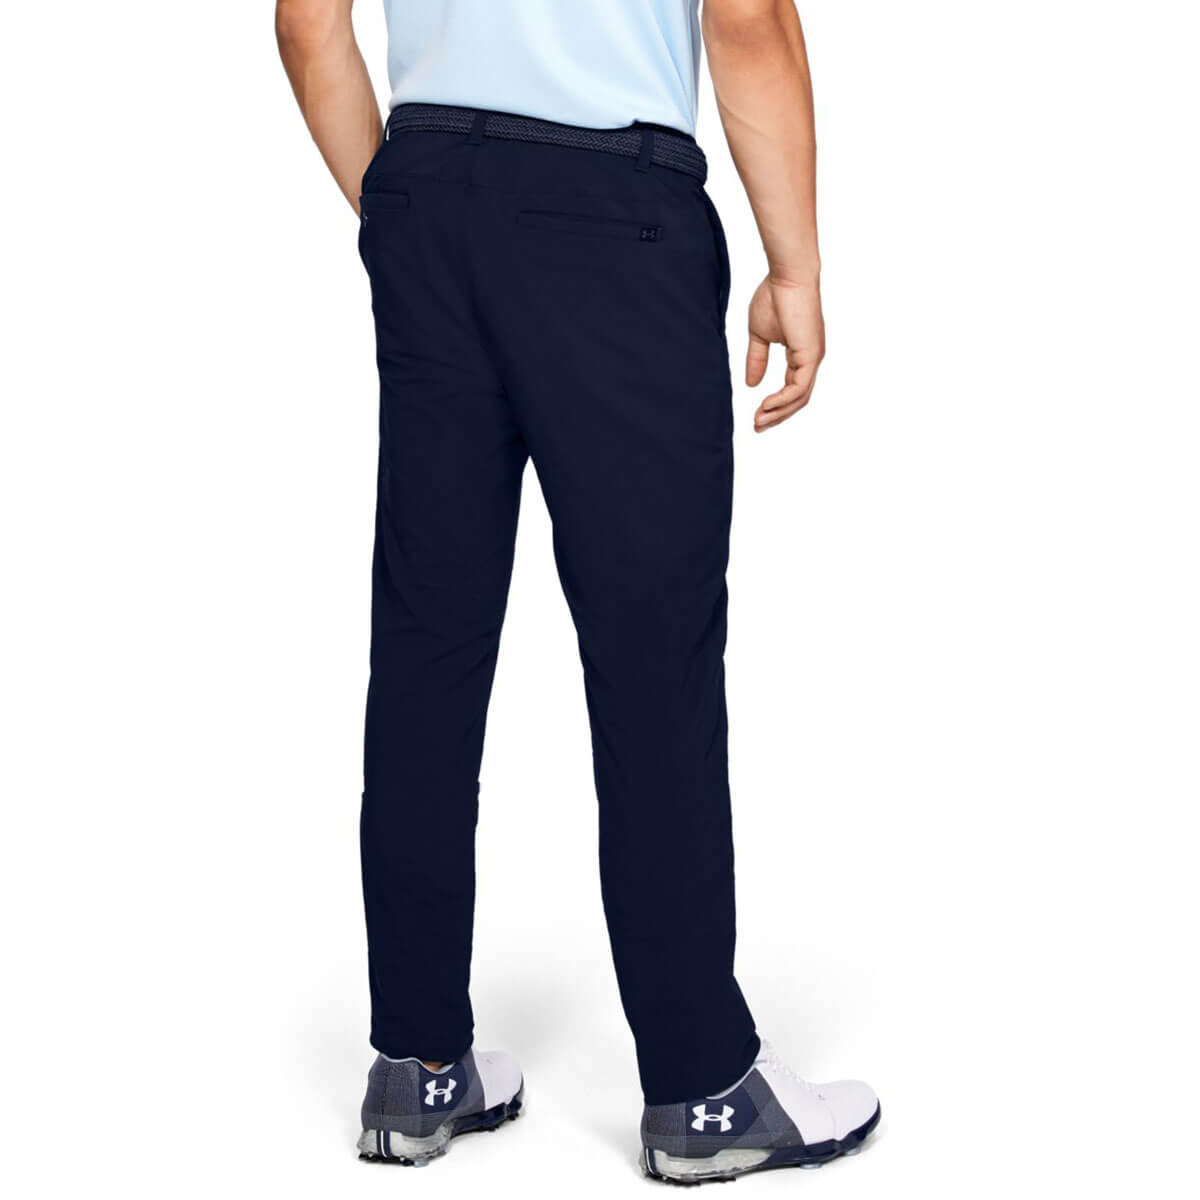 Under-Armour-Mens-2019-EU-Performance-Slim-Taper-Soft-Stretch-Golf-Trousers thumbnail 3